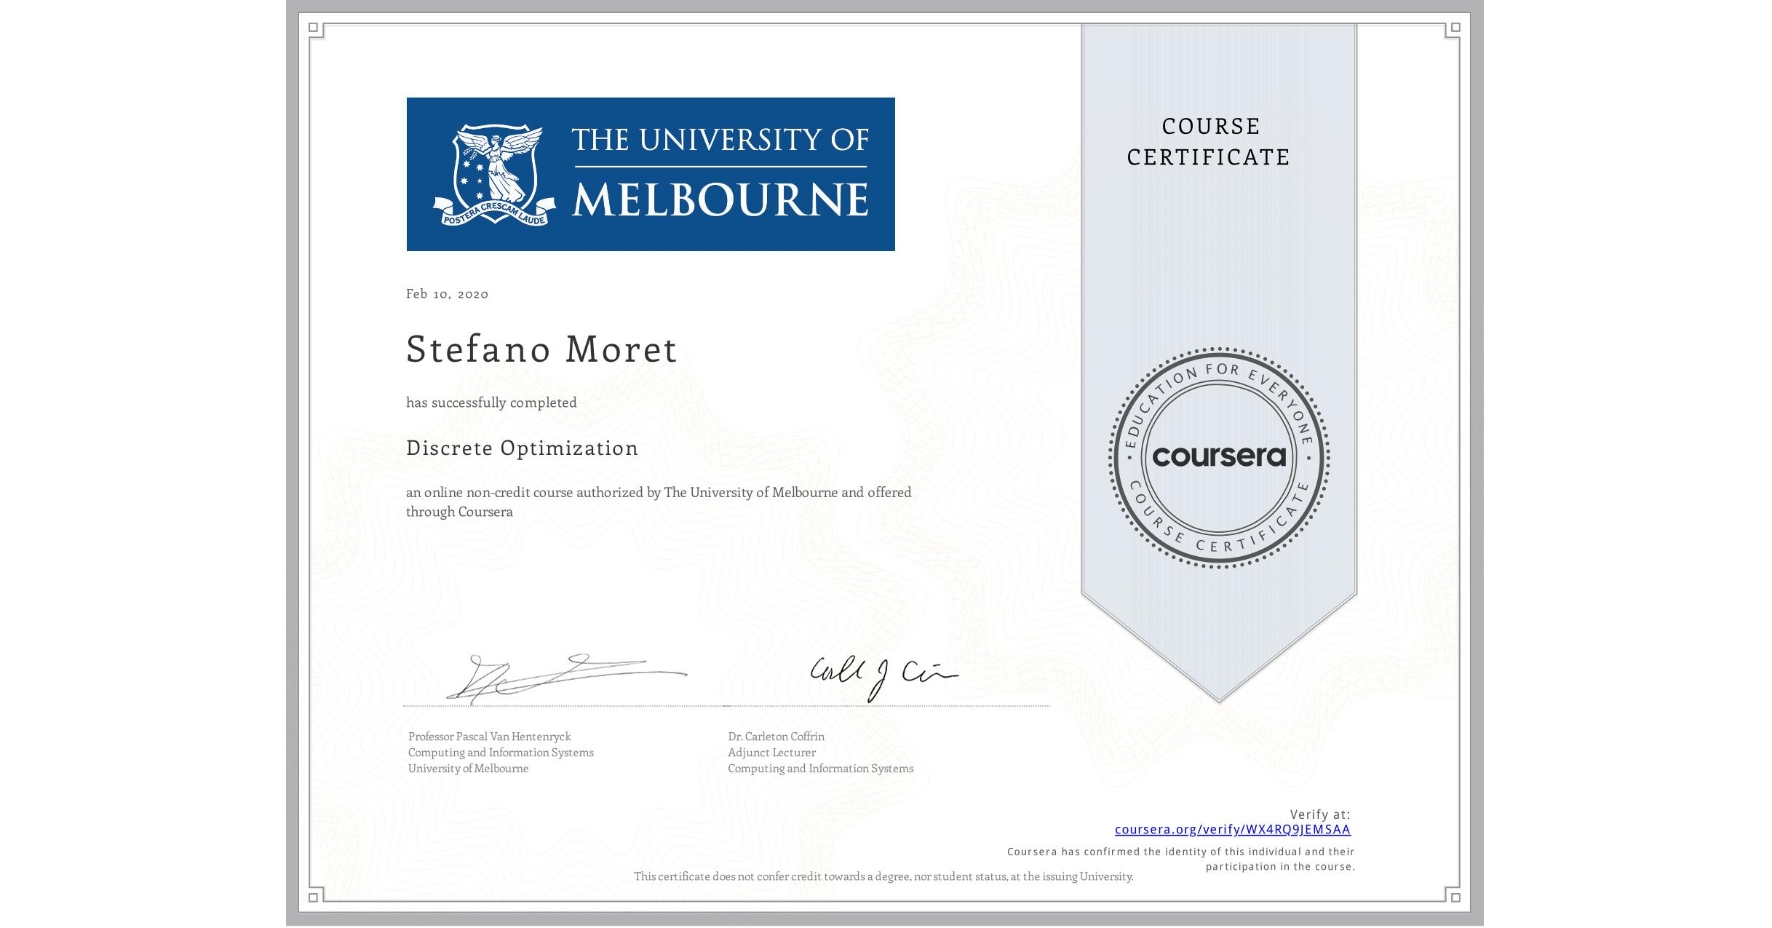 View certificate for Stefano Moret, Discrete Optimization, an online non-credit course authorized by The University of Melbourne and offered through Coursera